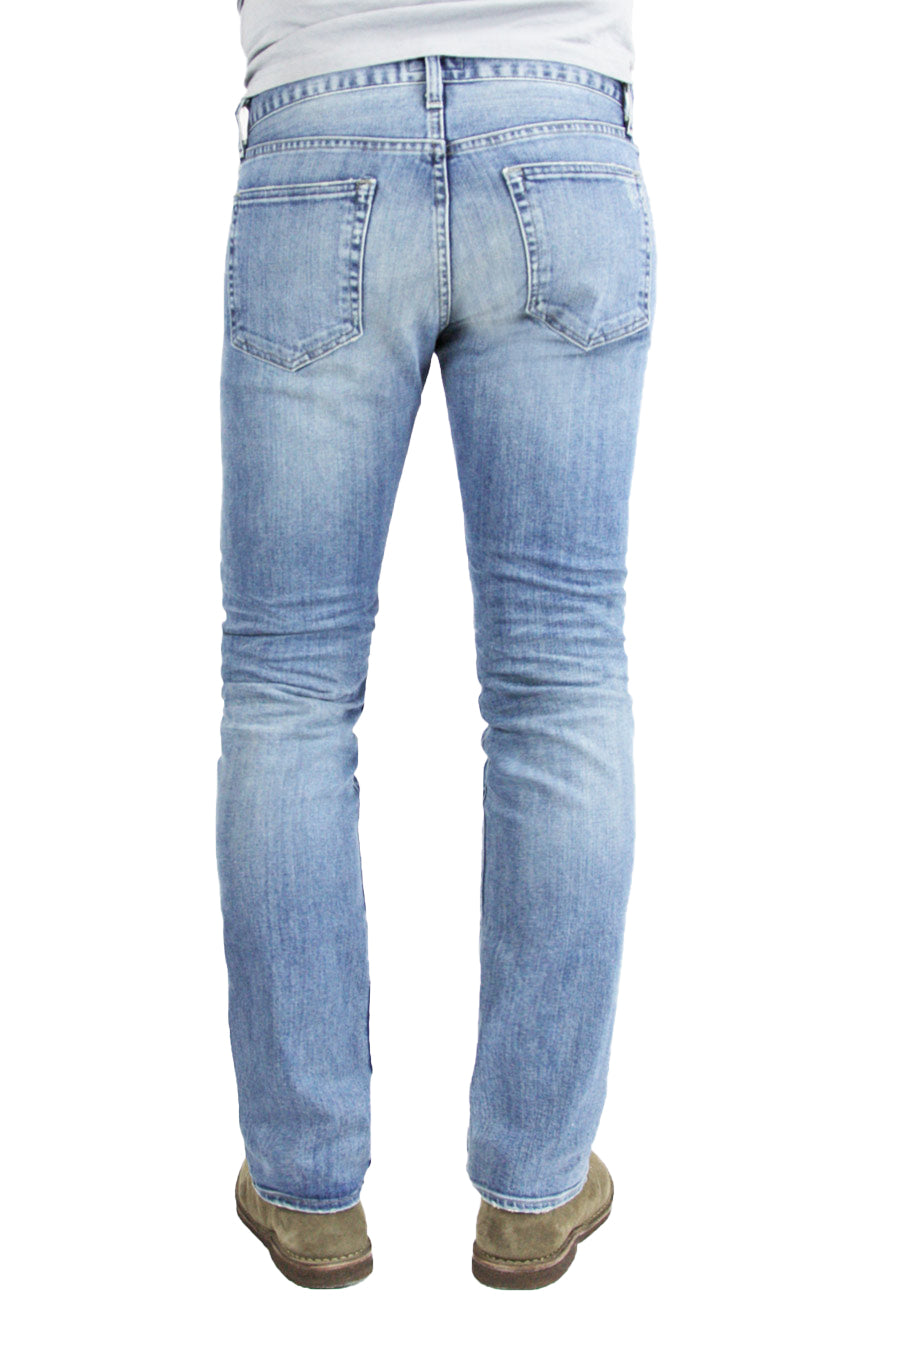 Back of S.M.N Studio's Hunter in Costello Men's Jeans - Slim fit light blue wash jean in comfort stretch denim